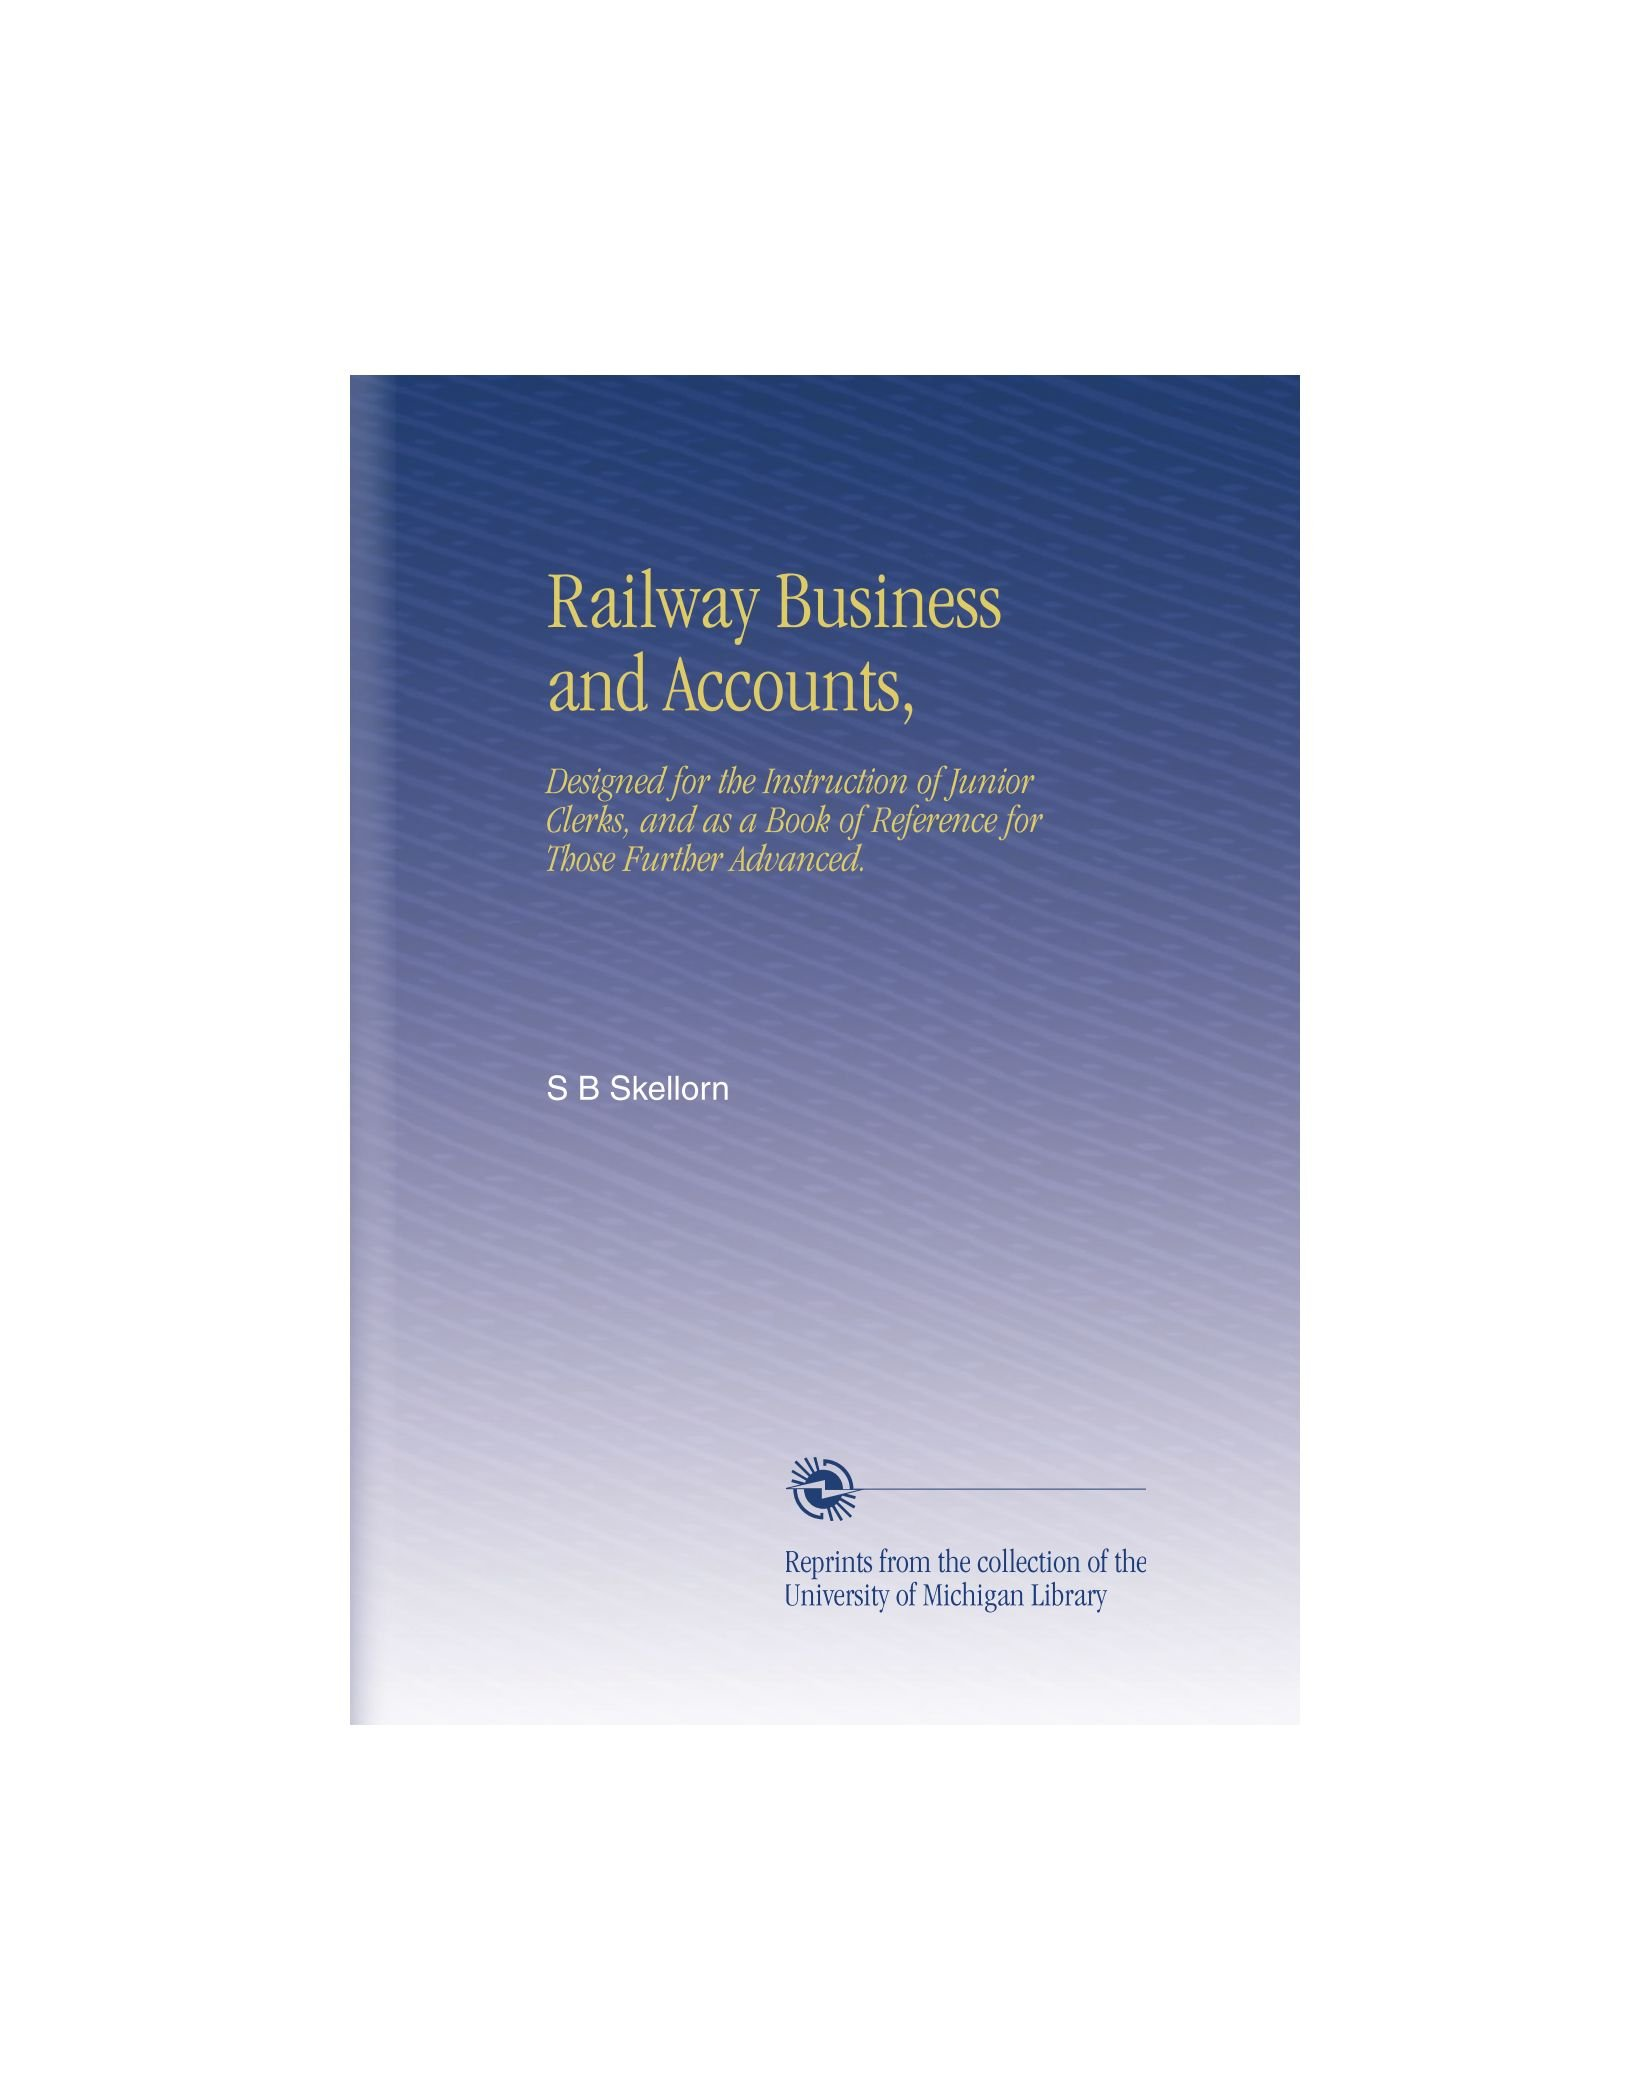 Railway Business and Accounts,: Designed for the Instruction of Junior Clerks, and as a Book of Reference for Those Further Advanced. pdf epub